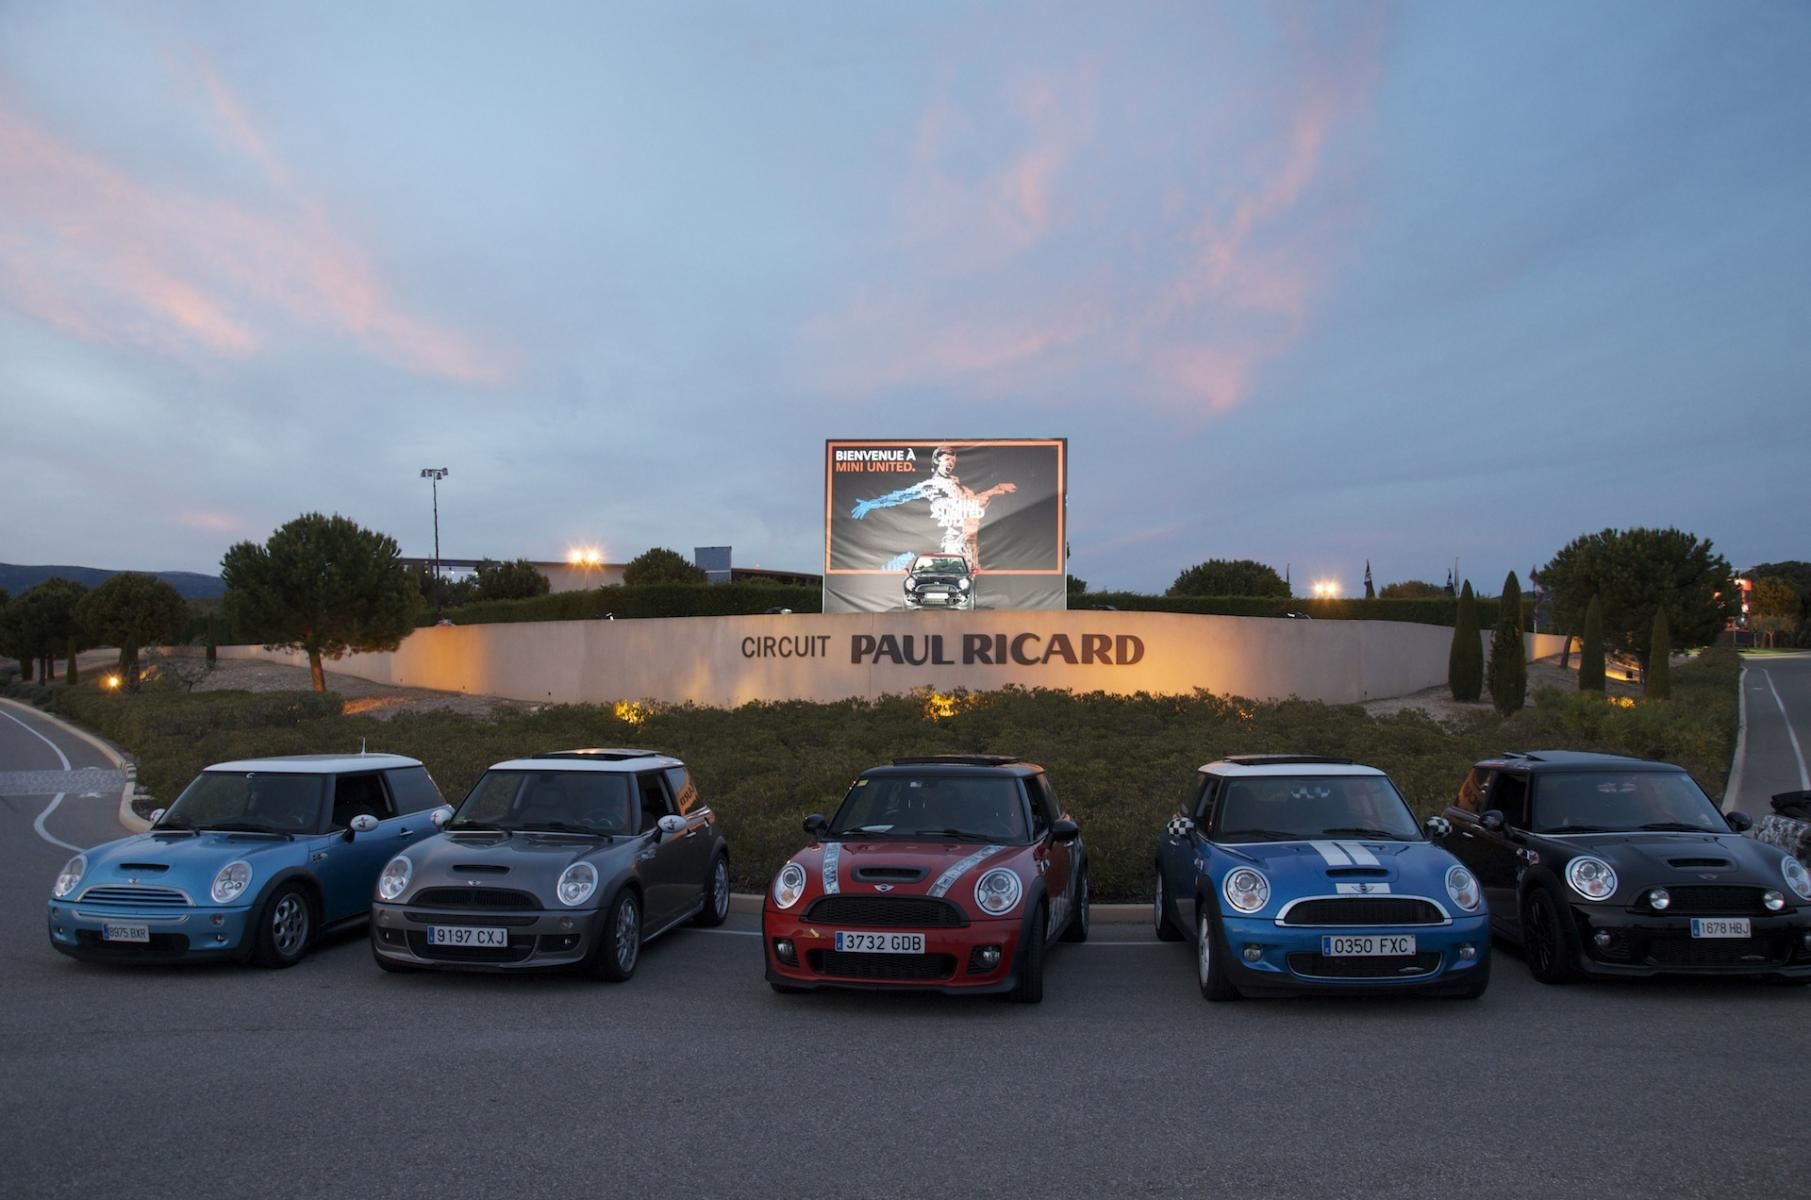 Just arrived with my friends to MINI United at Paul Ricard